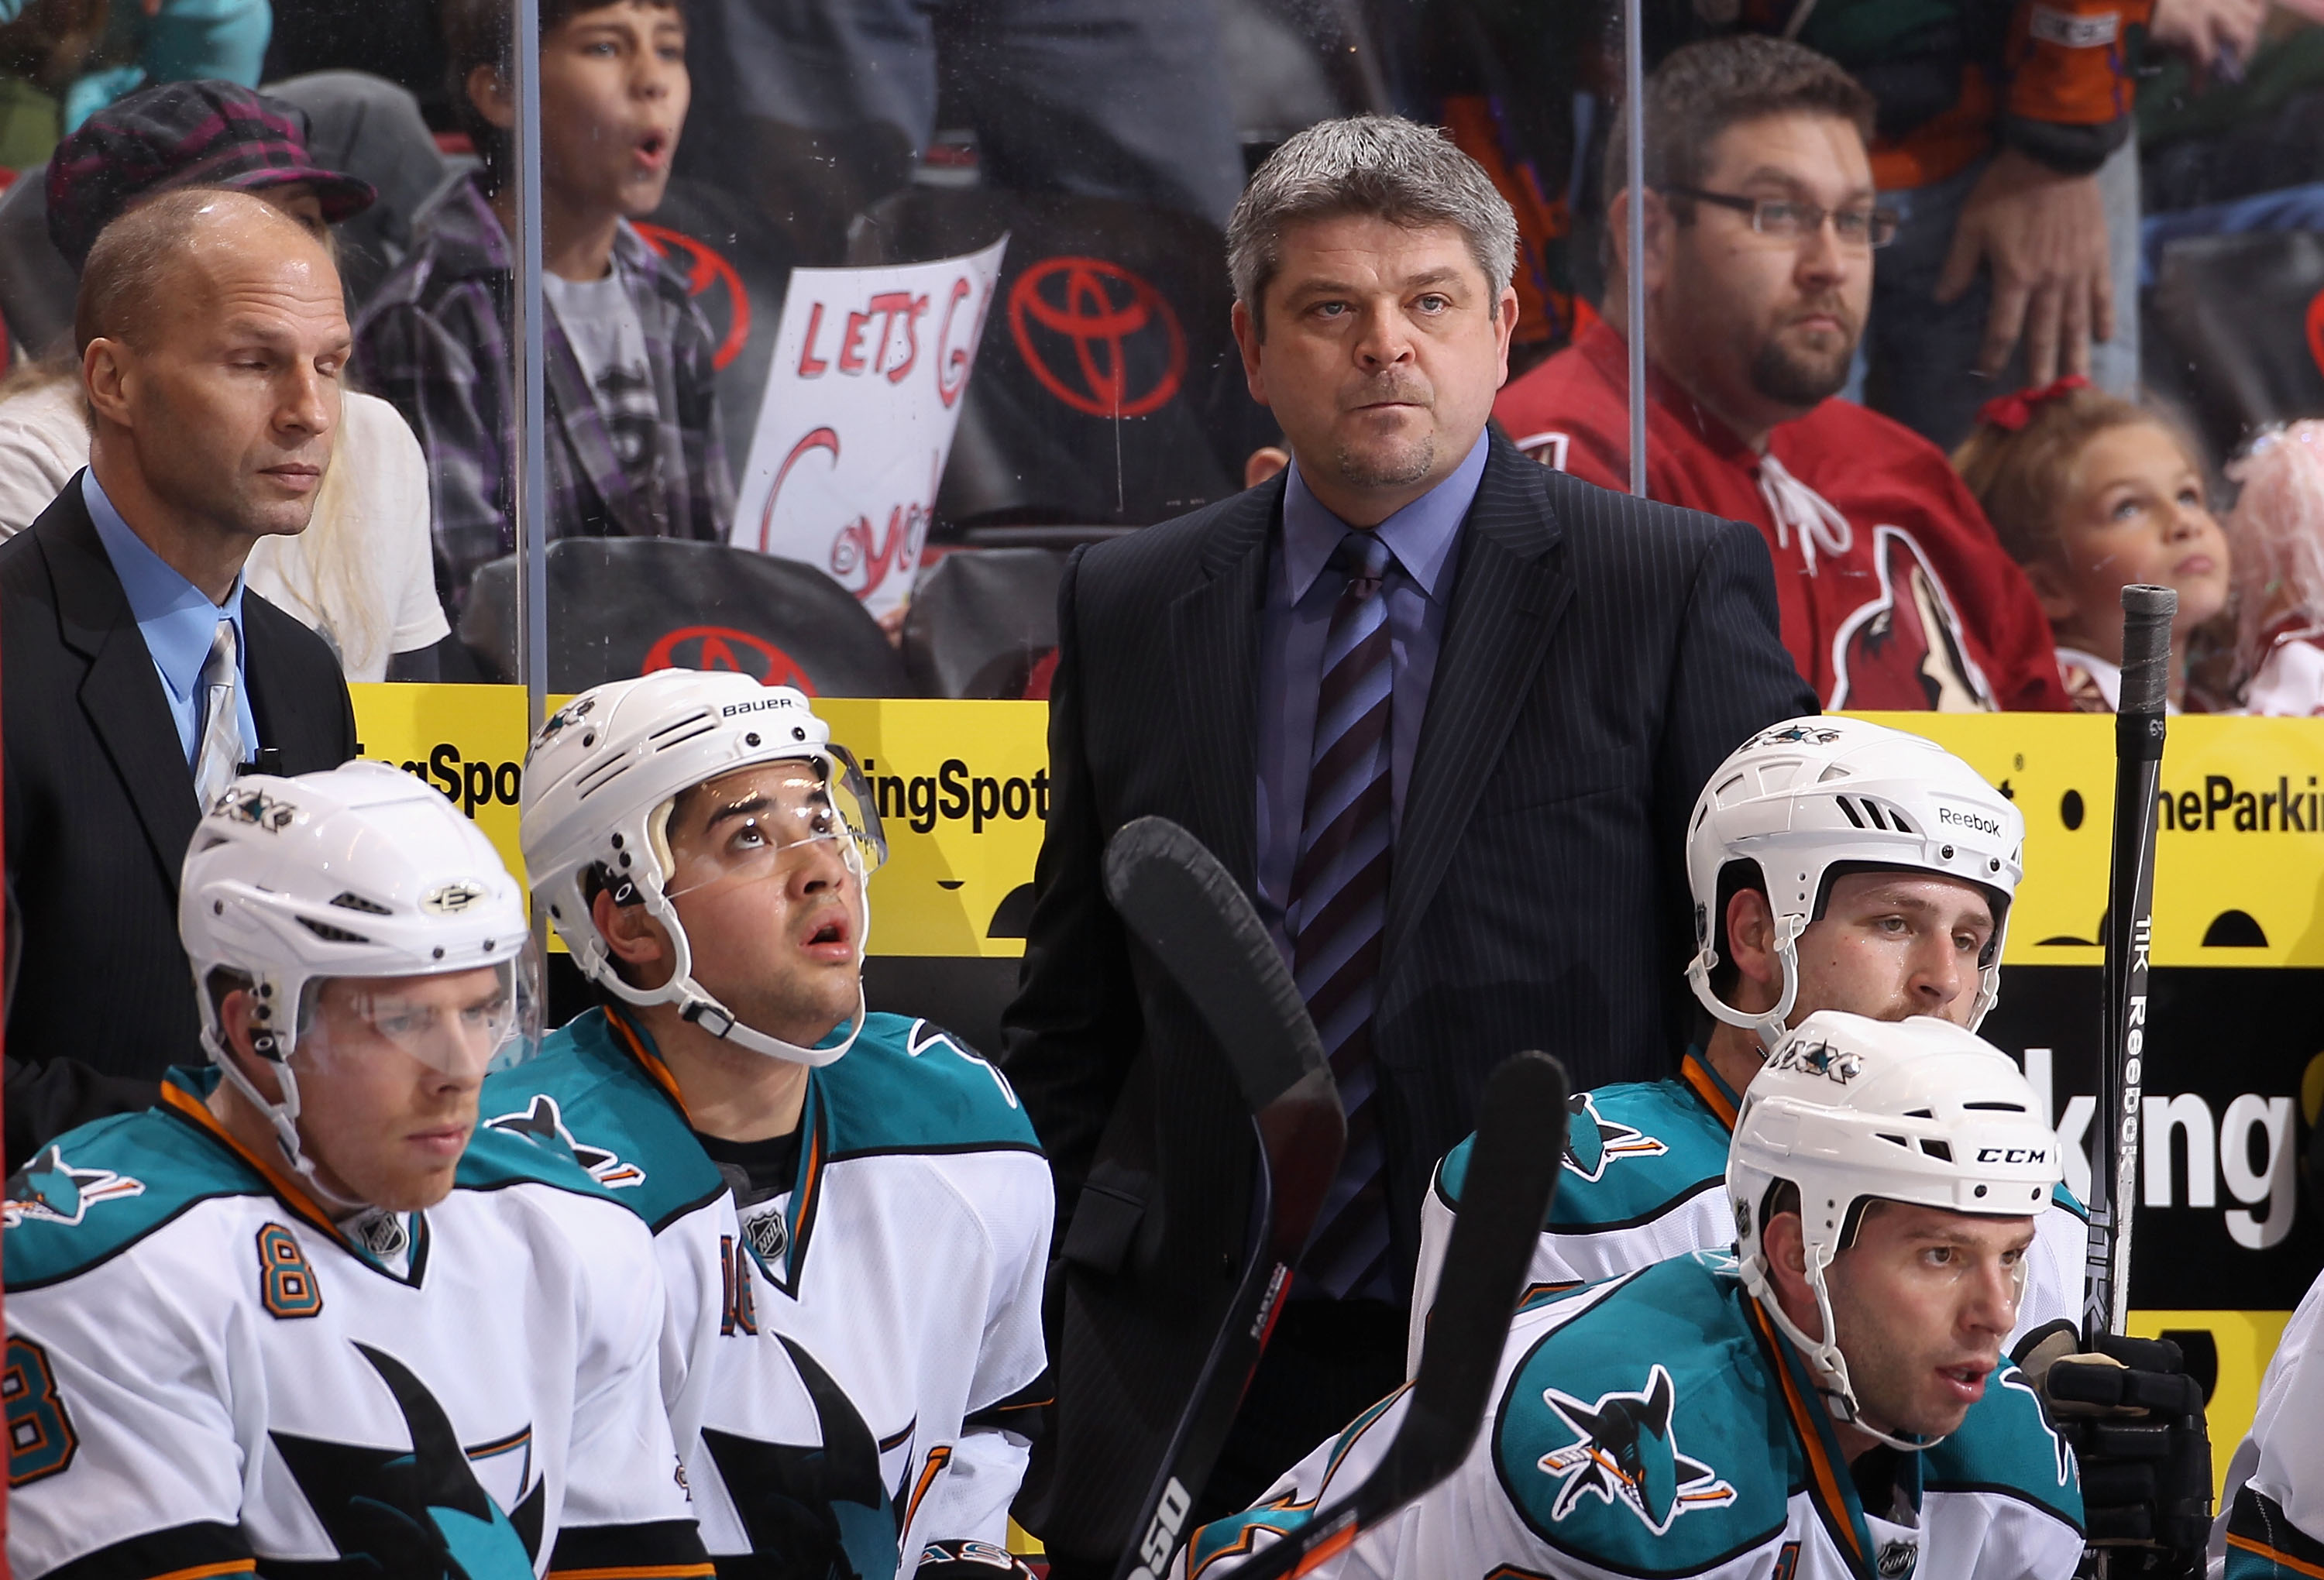 GLENDALE, AZ - JANUARY 17:  Head coach Todd McLellan of the San Jose Sharks watches from the bench during the NHL game against the Phoenix Coyotes at Jobing.com Arena on January 17, 2011 in Glendale, Arizona.  The Sharks defeated the Coyotes 4-2.  (Photo